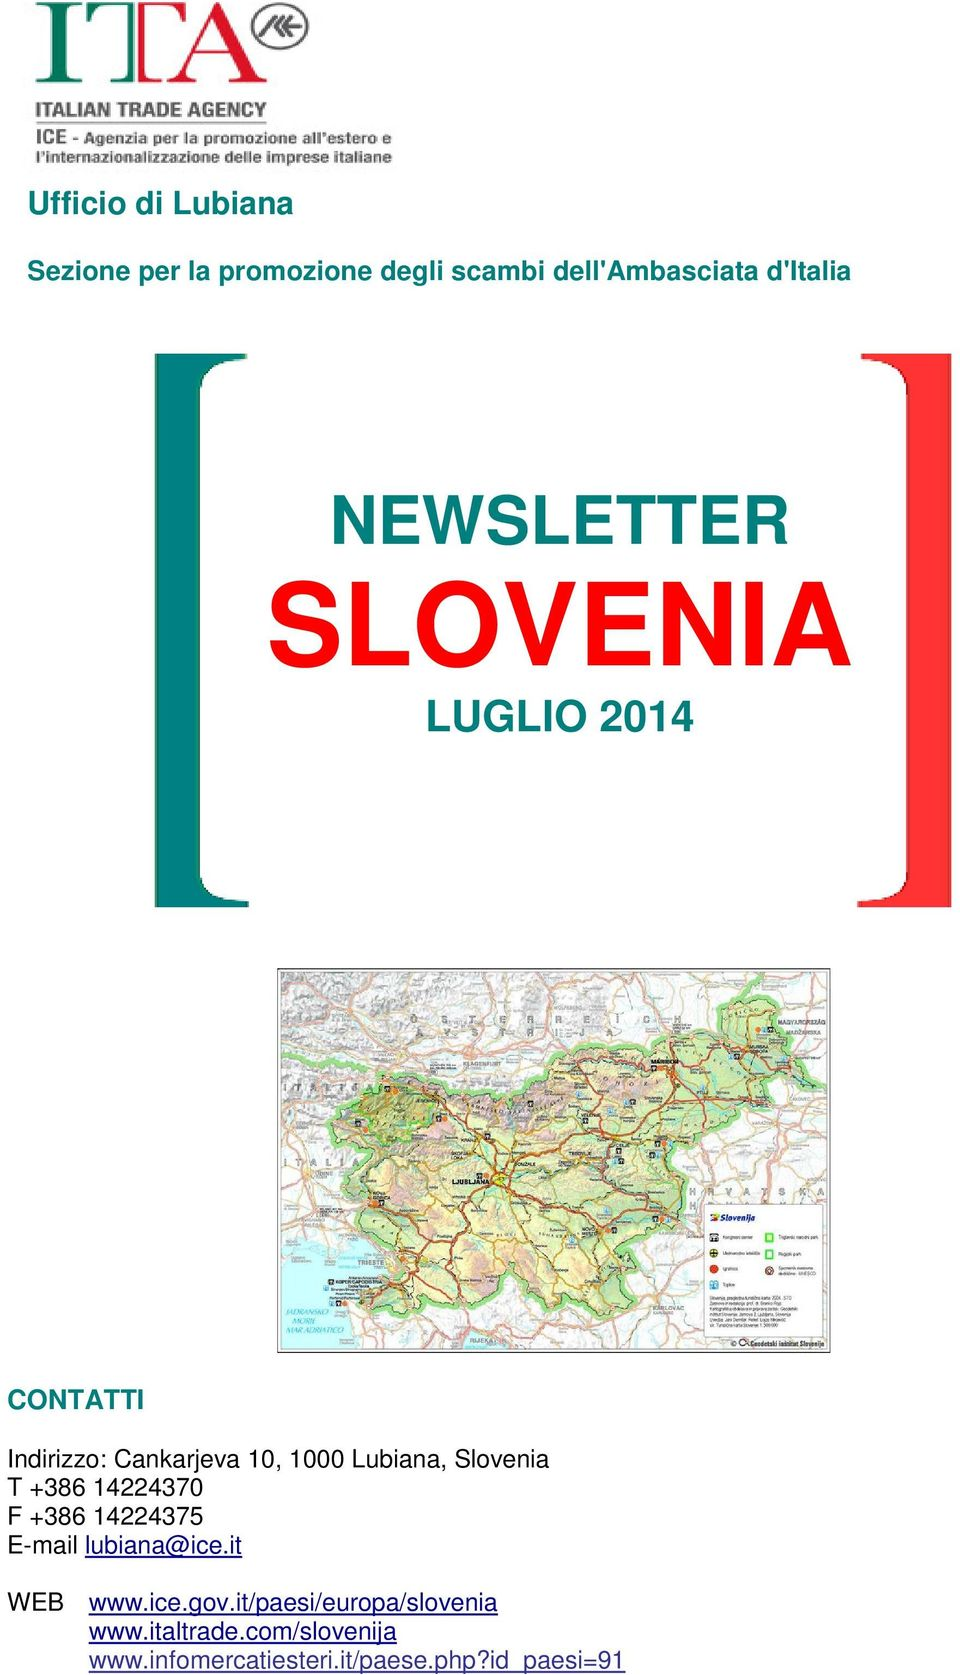 Slovenia T +386 14224370 F +386 14224375 E-mail lubiana@ice.it WEB www.ice.gov.